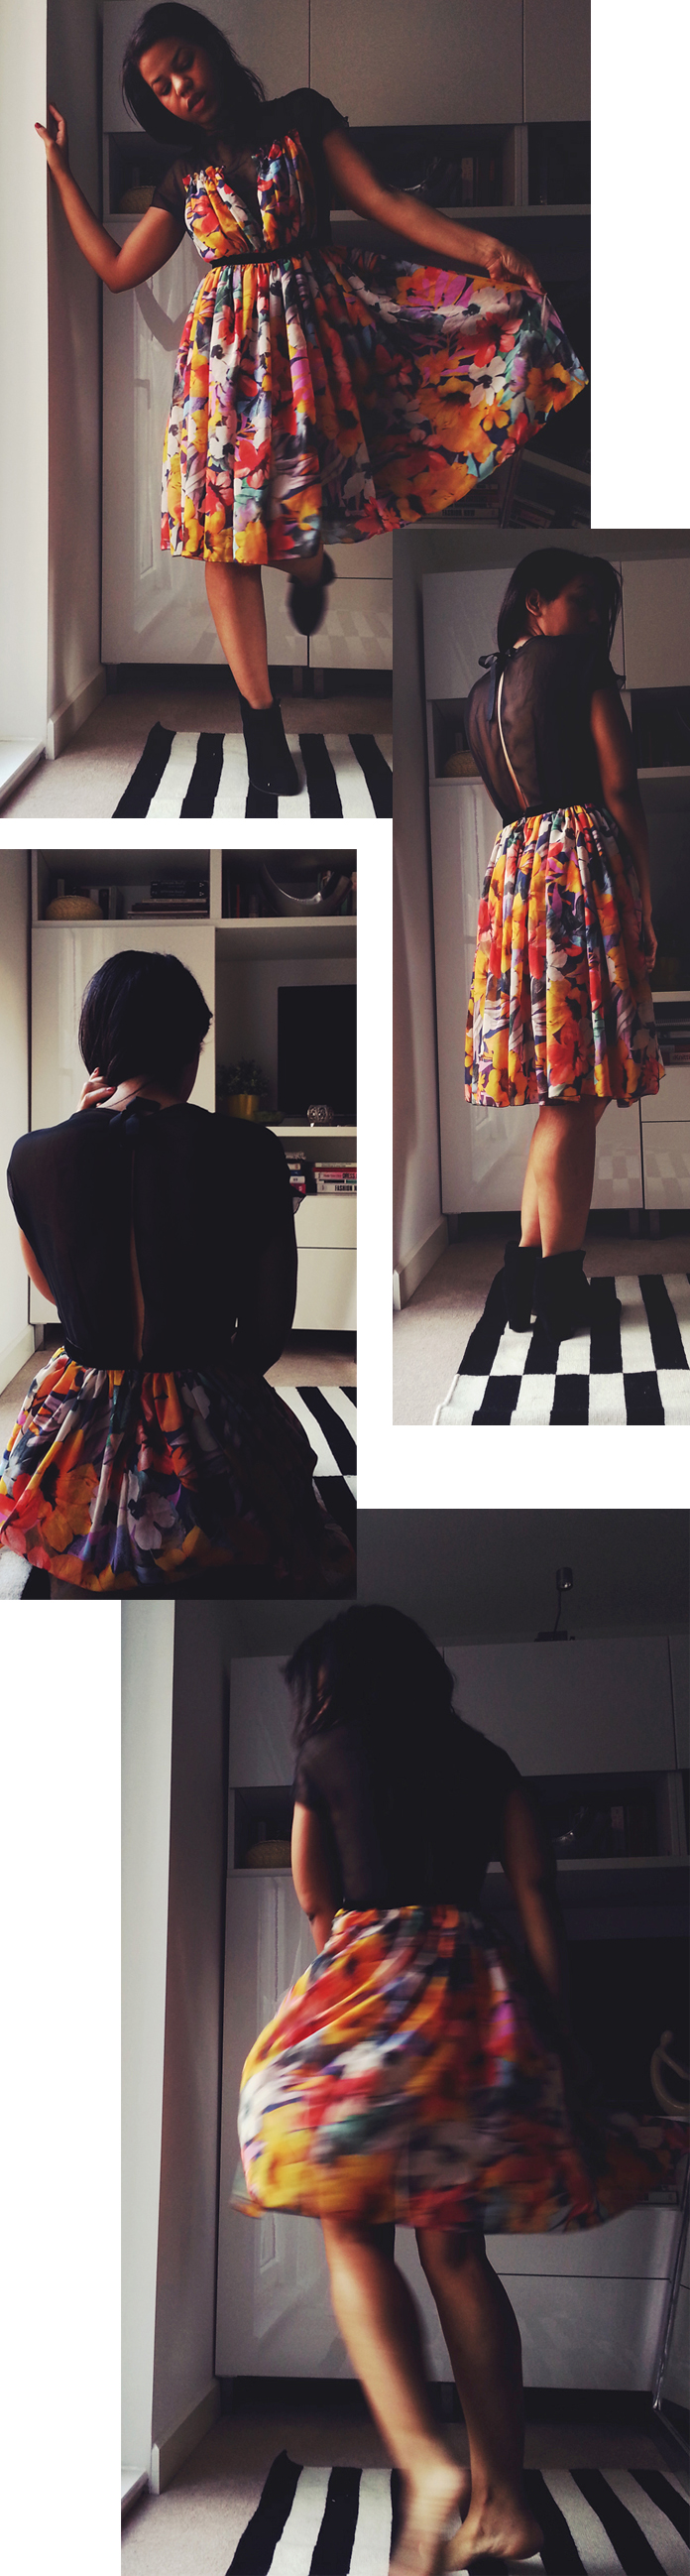 TheSecretCostumier - The Dior dress is ready13